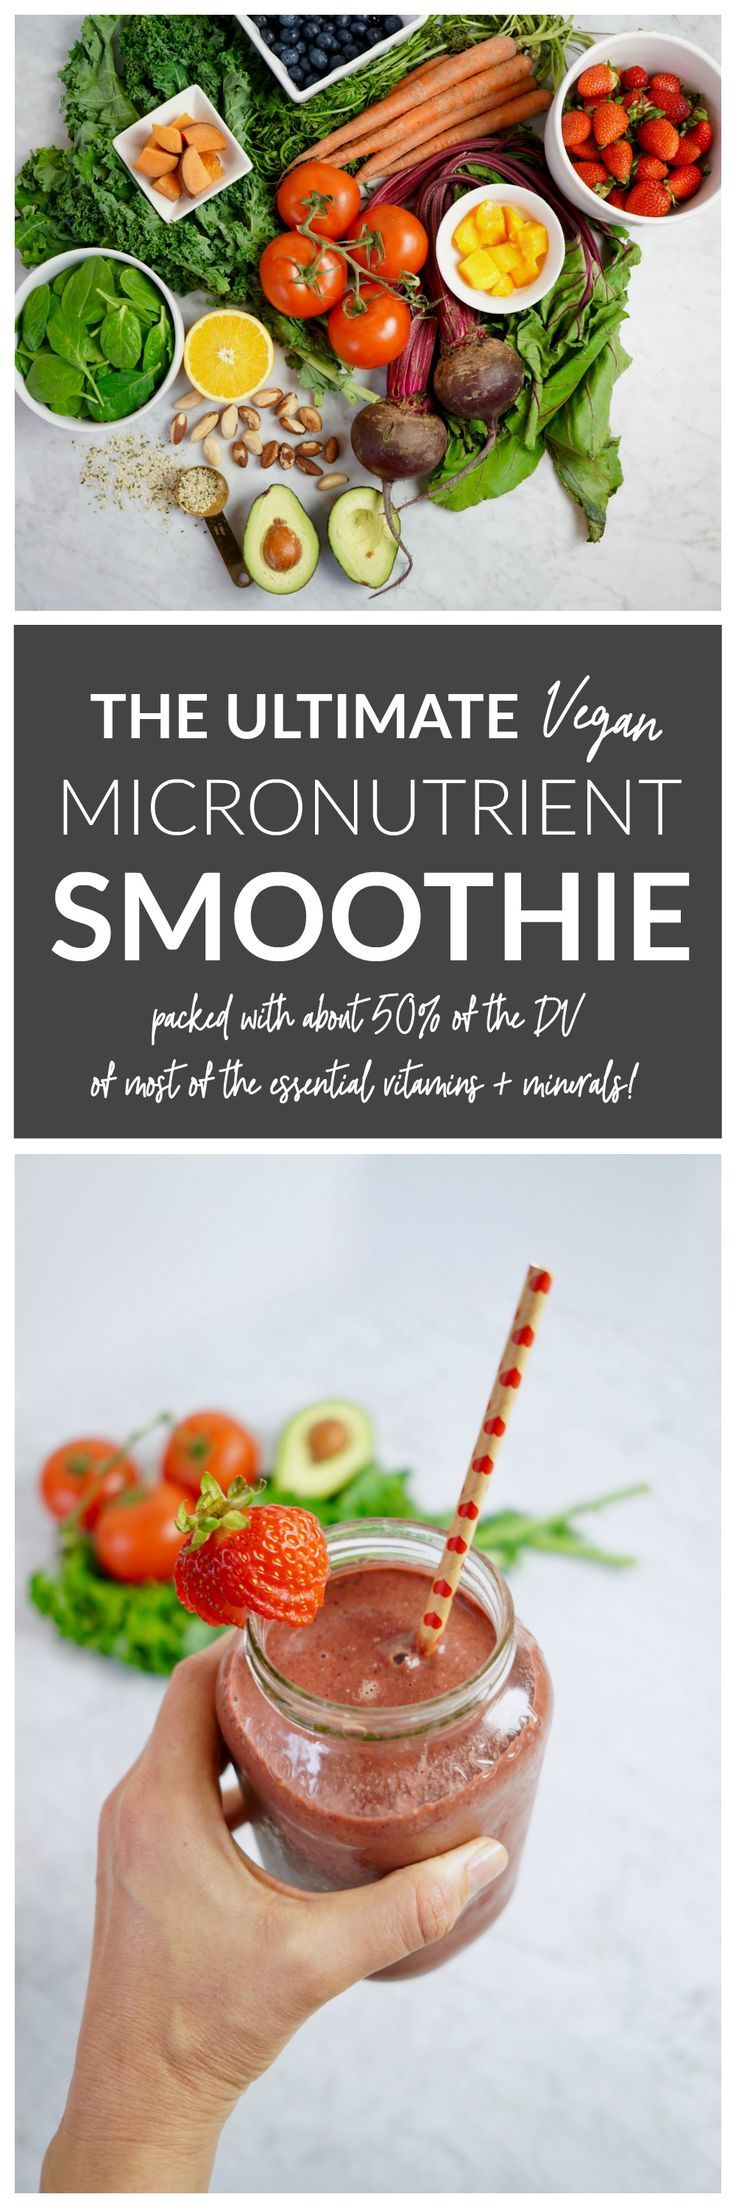 The Ultimate Vegan Micronutrient Smoothie - this smoothie is packed with about 50% of your daily micronutrient needs for most of your essential vitamins + minerals. It also has 15 grams of fiber and 16 grams of plant-based protein - without using any protein powder or supplements. AND it tastes delicious! #vegan #smoothies #nutrition